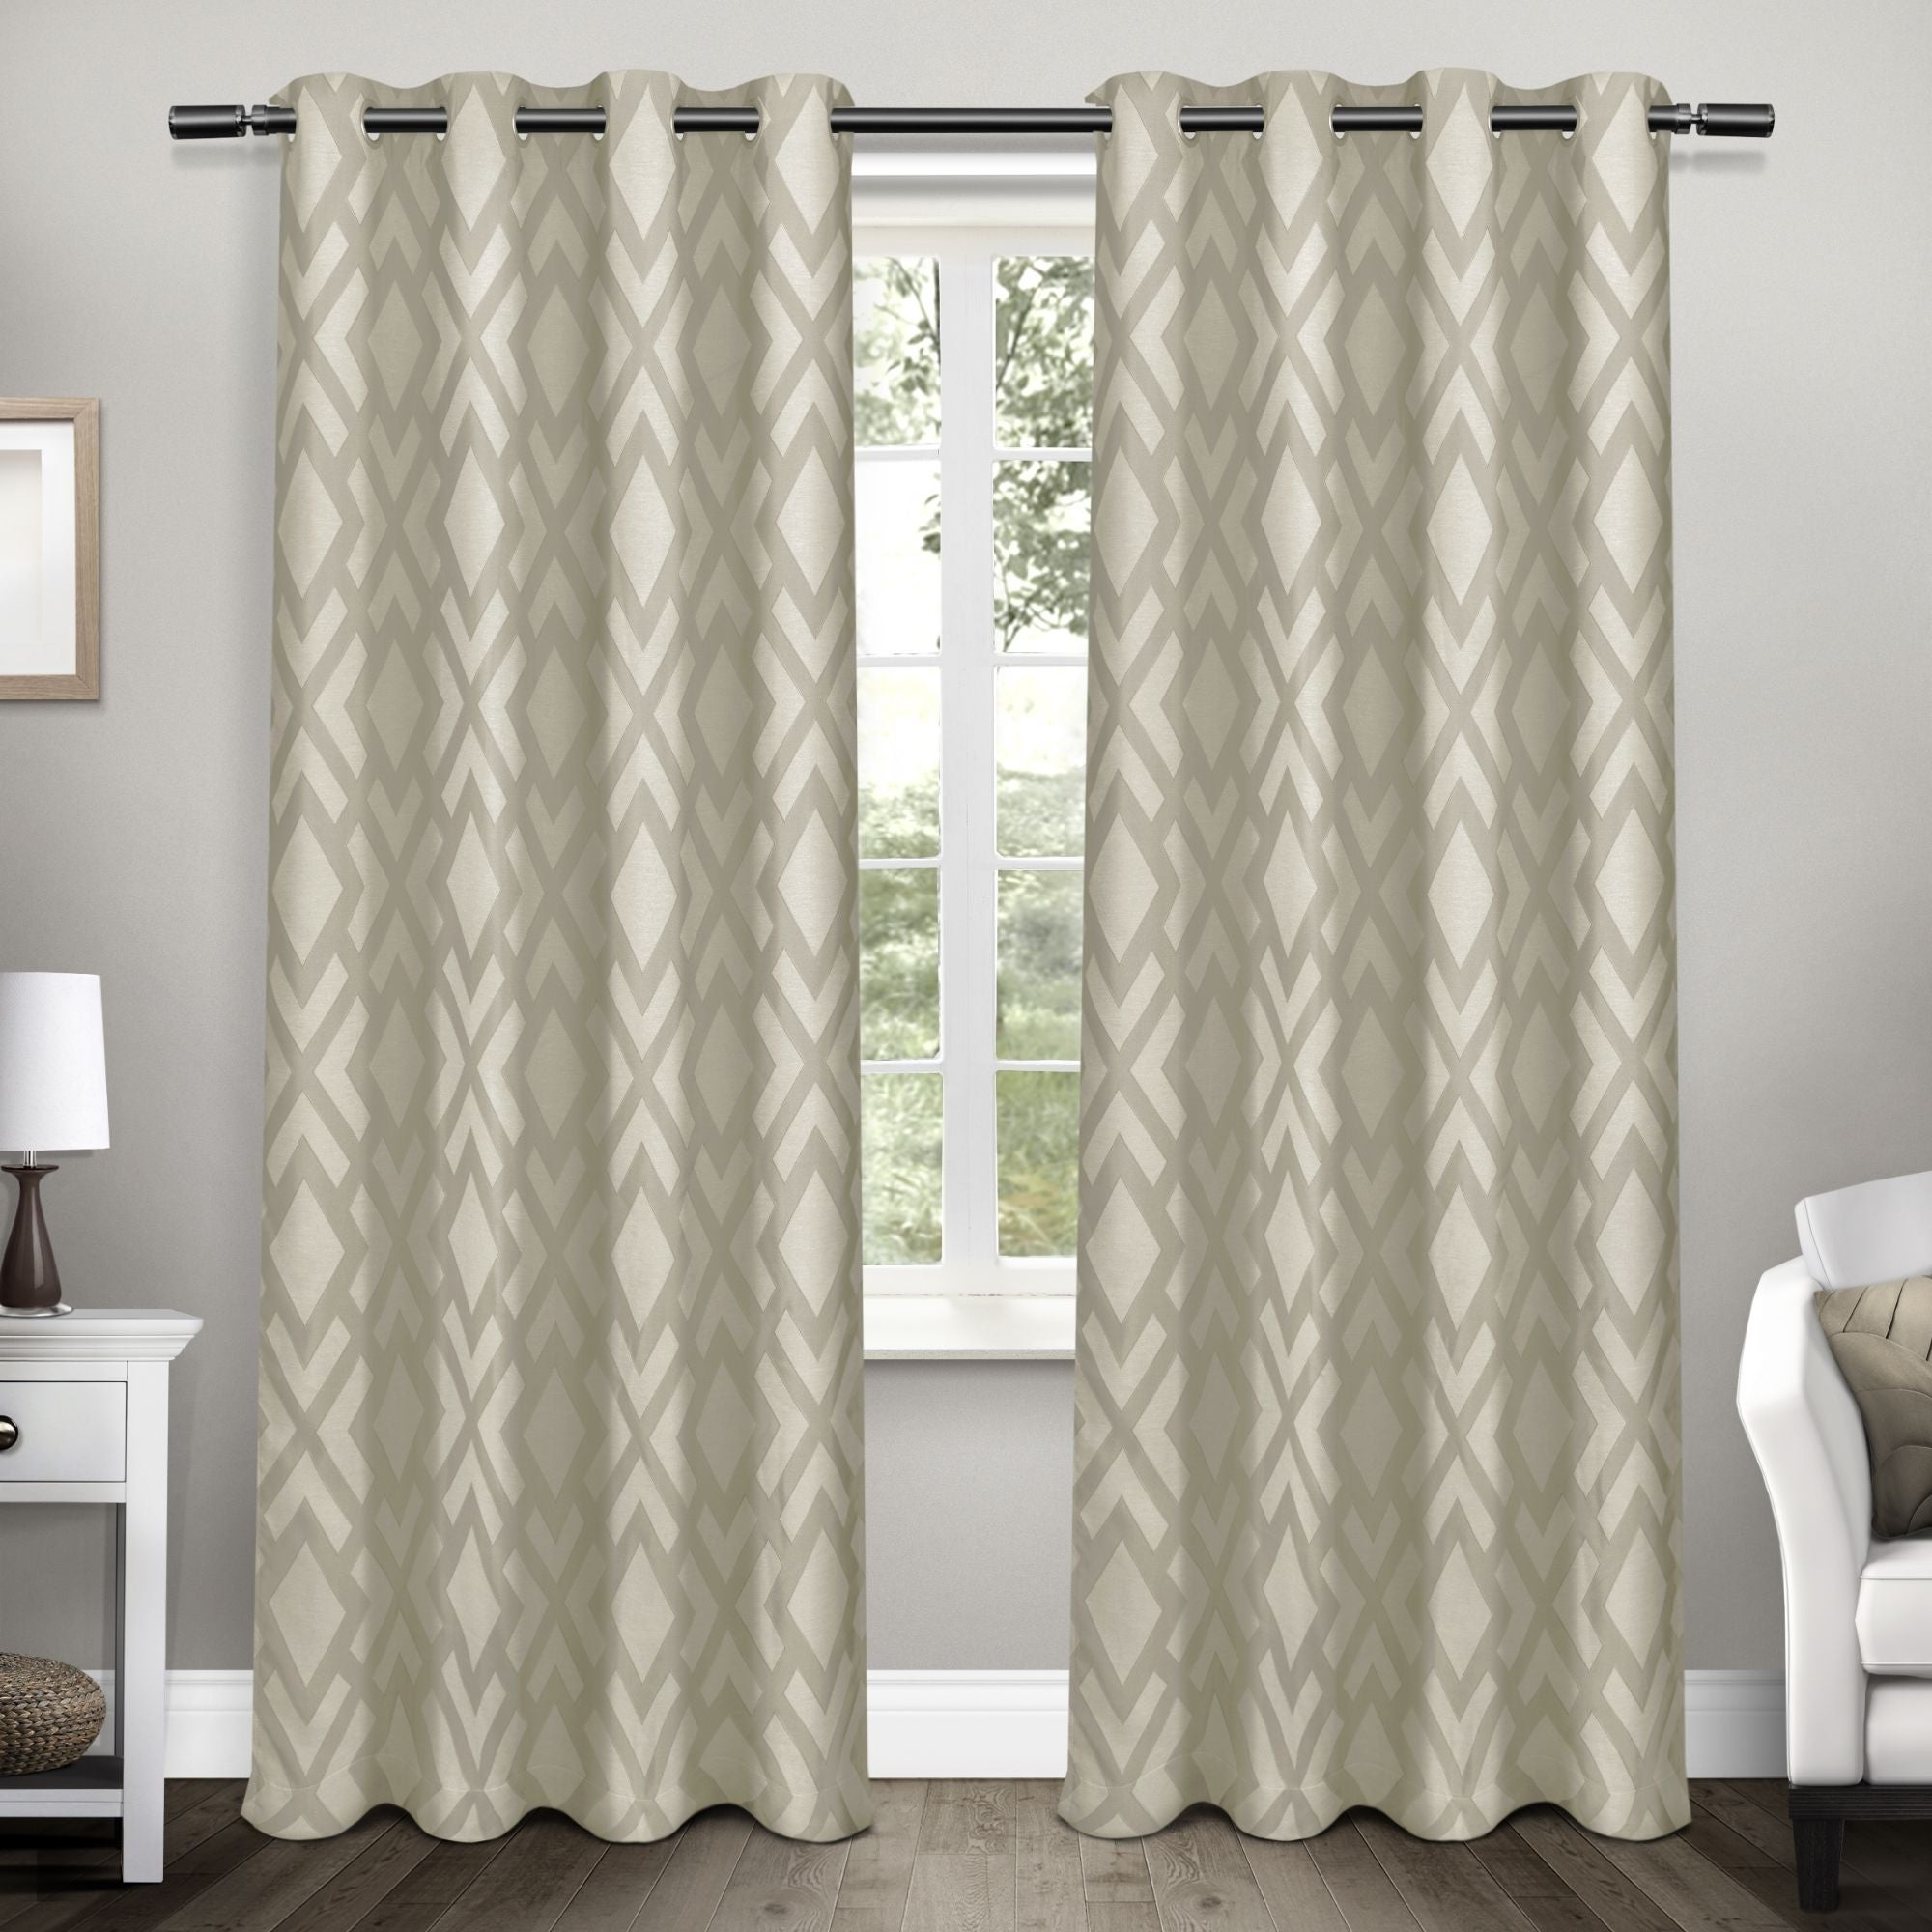 2020 Ati Home Easton Thermal Woven Blackout Grommet Top Curtain Panel Pair Inside Twig Insulated Blackout Curtain Panel Pairs With Grommet Top (View 10 of 20)